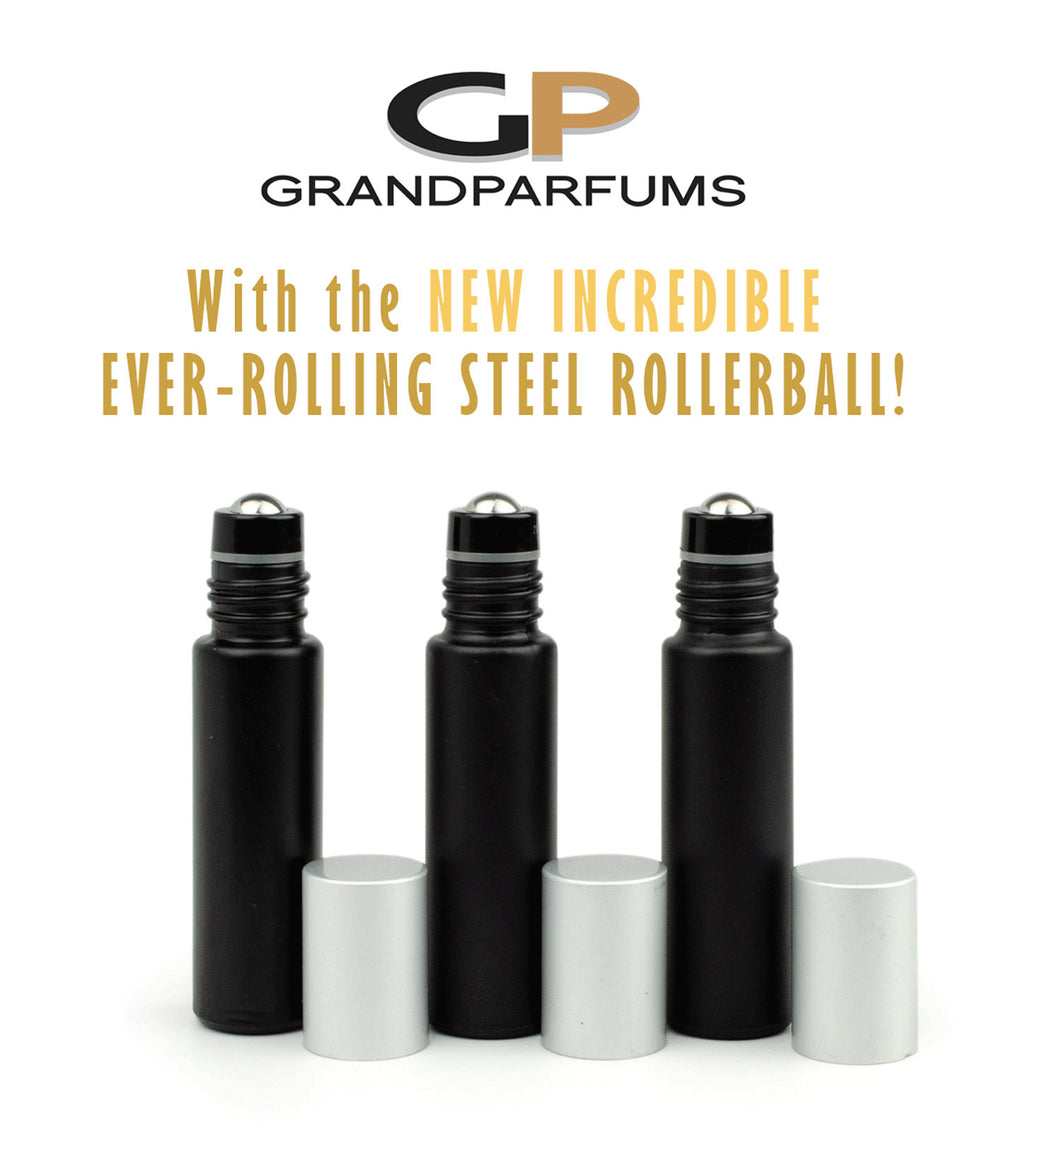 Matte Black Rollers 6Pcs No-Leak Steel Rollers! 10 ml MaTTE BLaCK Essential Oil Glass Bottles w/ Matte Silver or BAMBOO Caps, Essential Oil